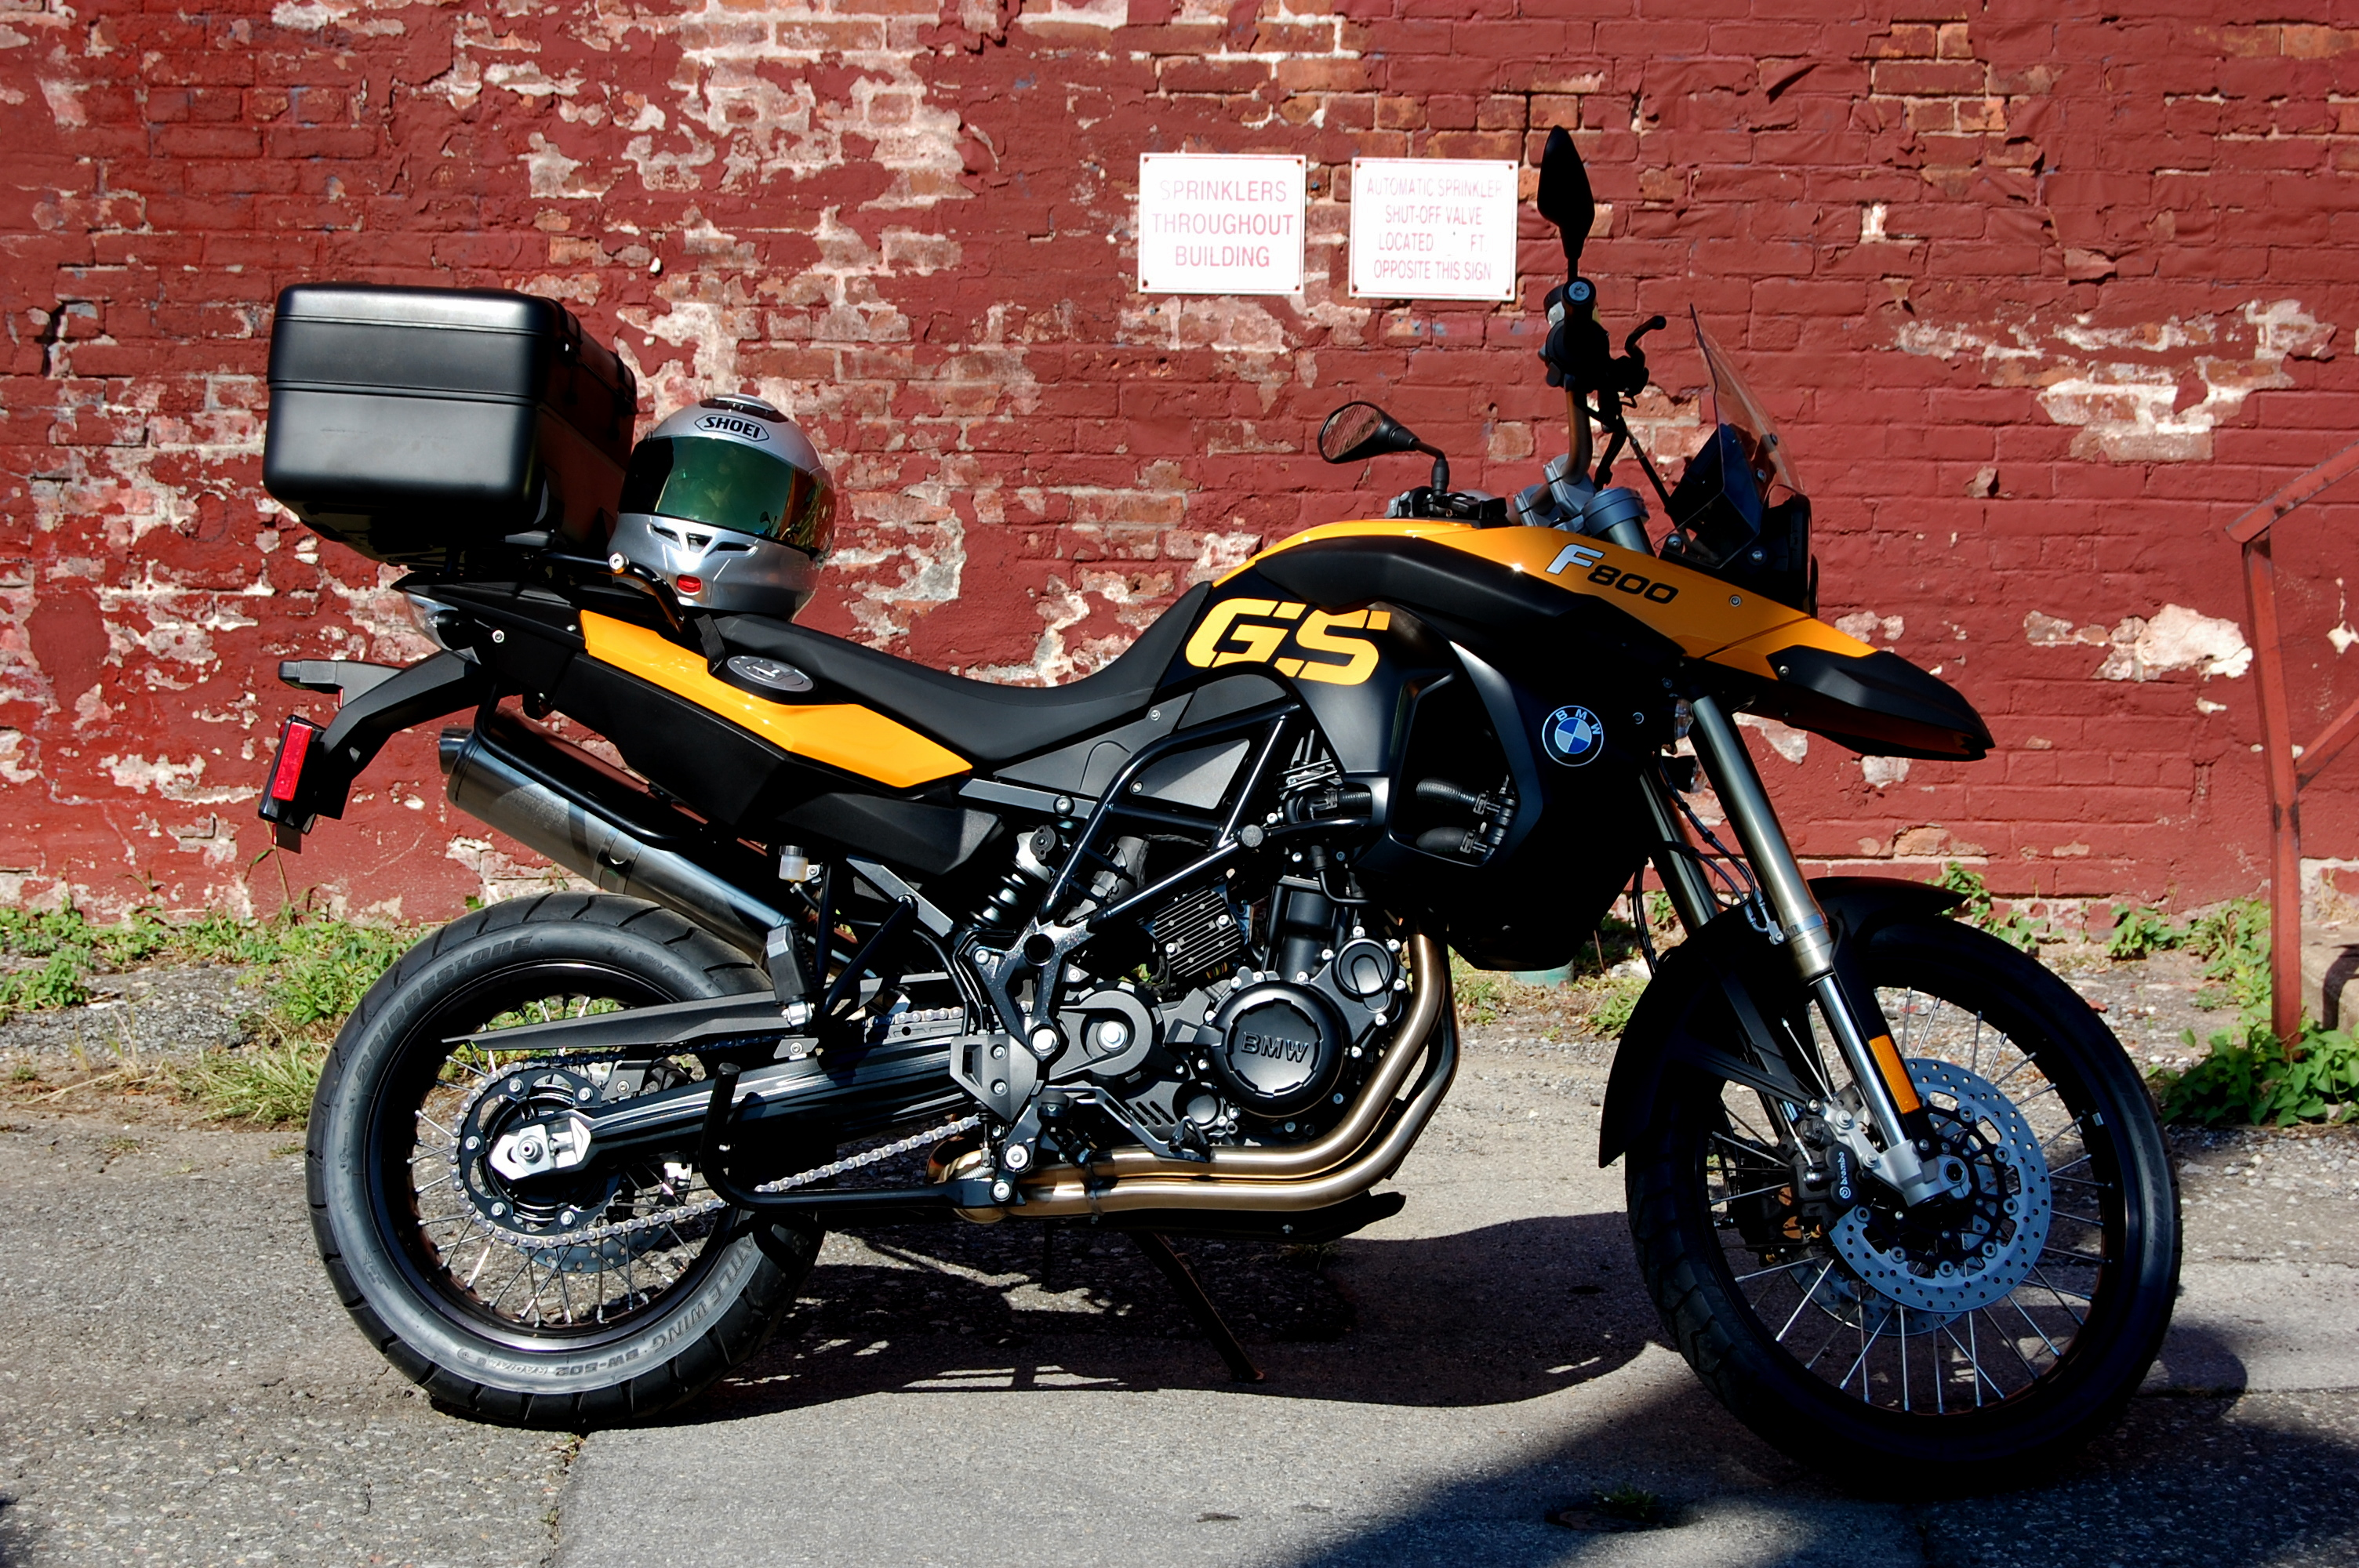 BMW F650GS 2008 images #78174